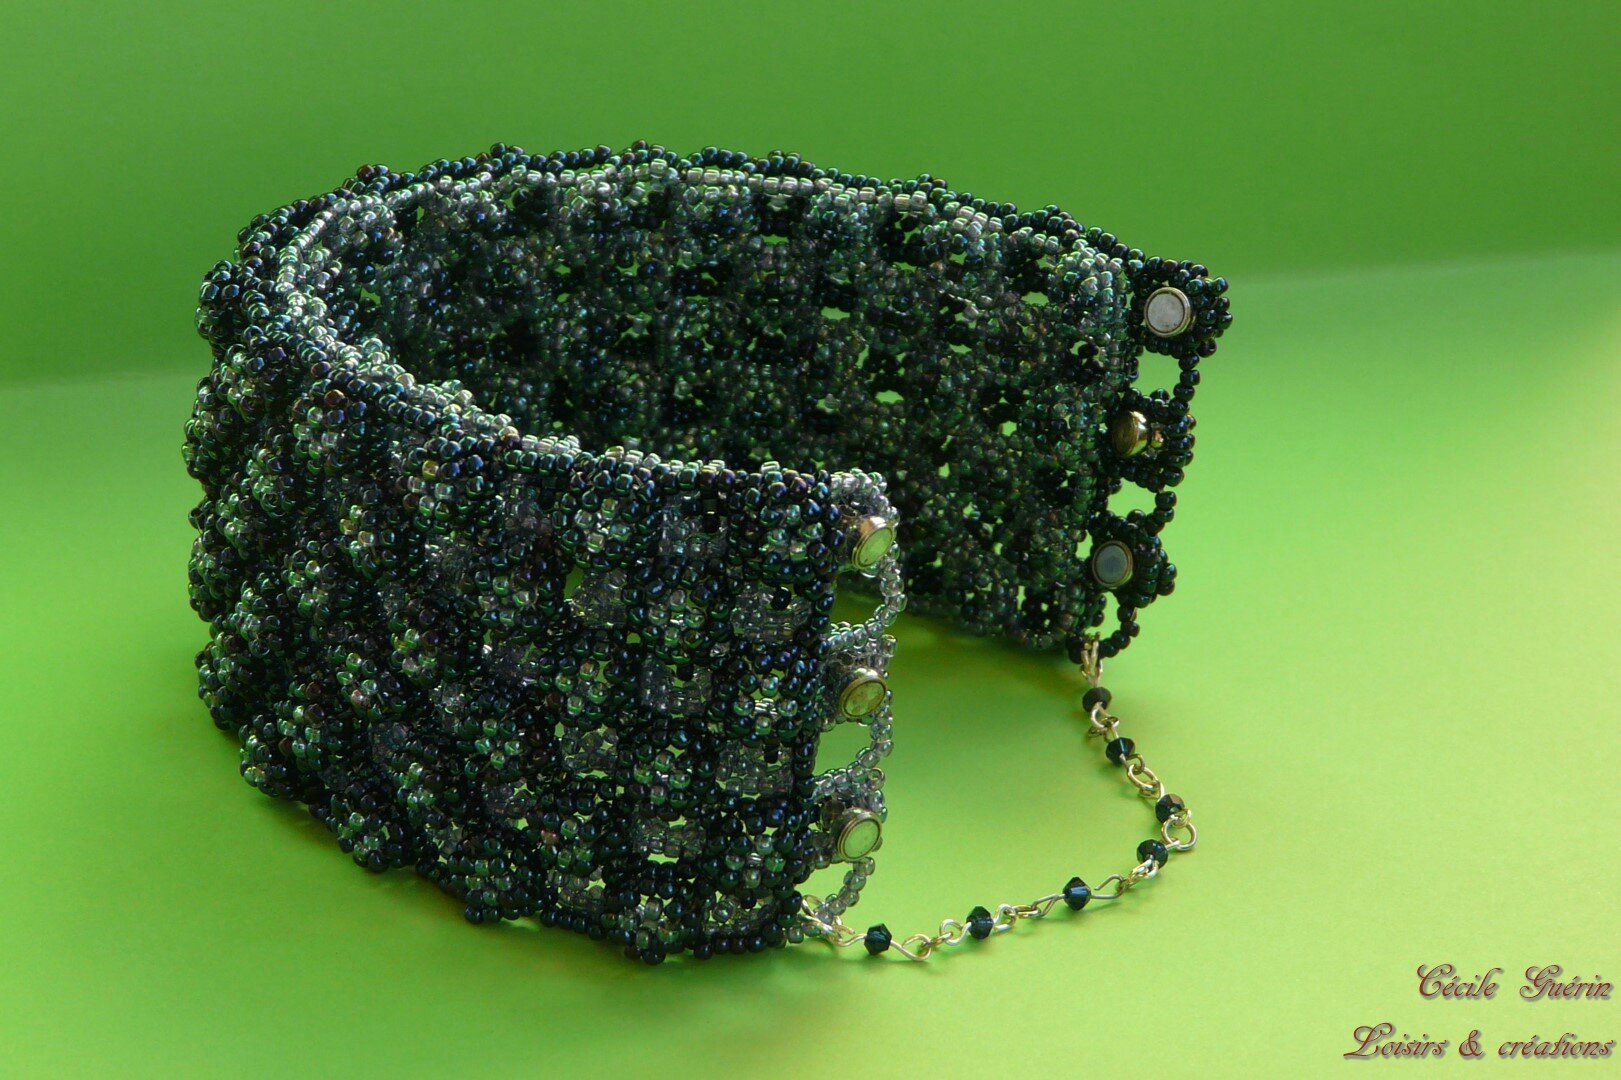 Ootheca cuff